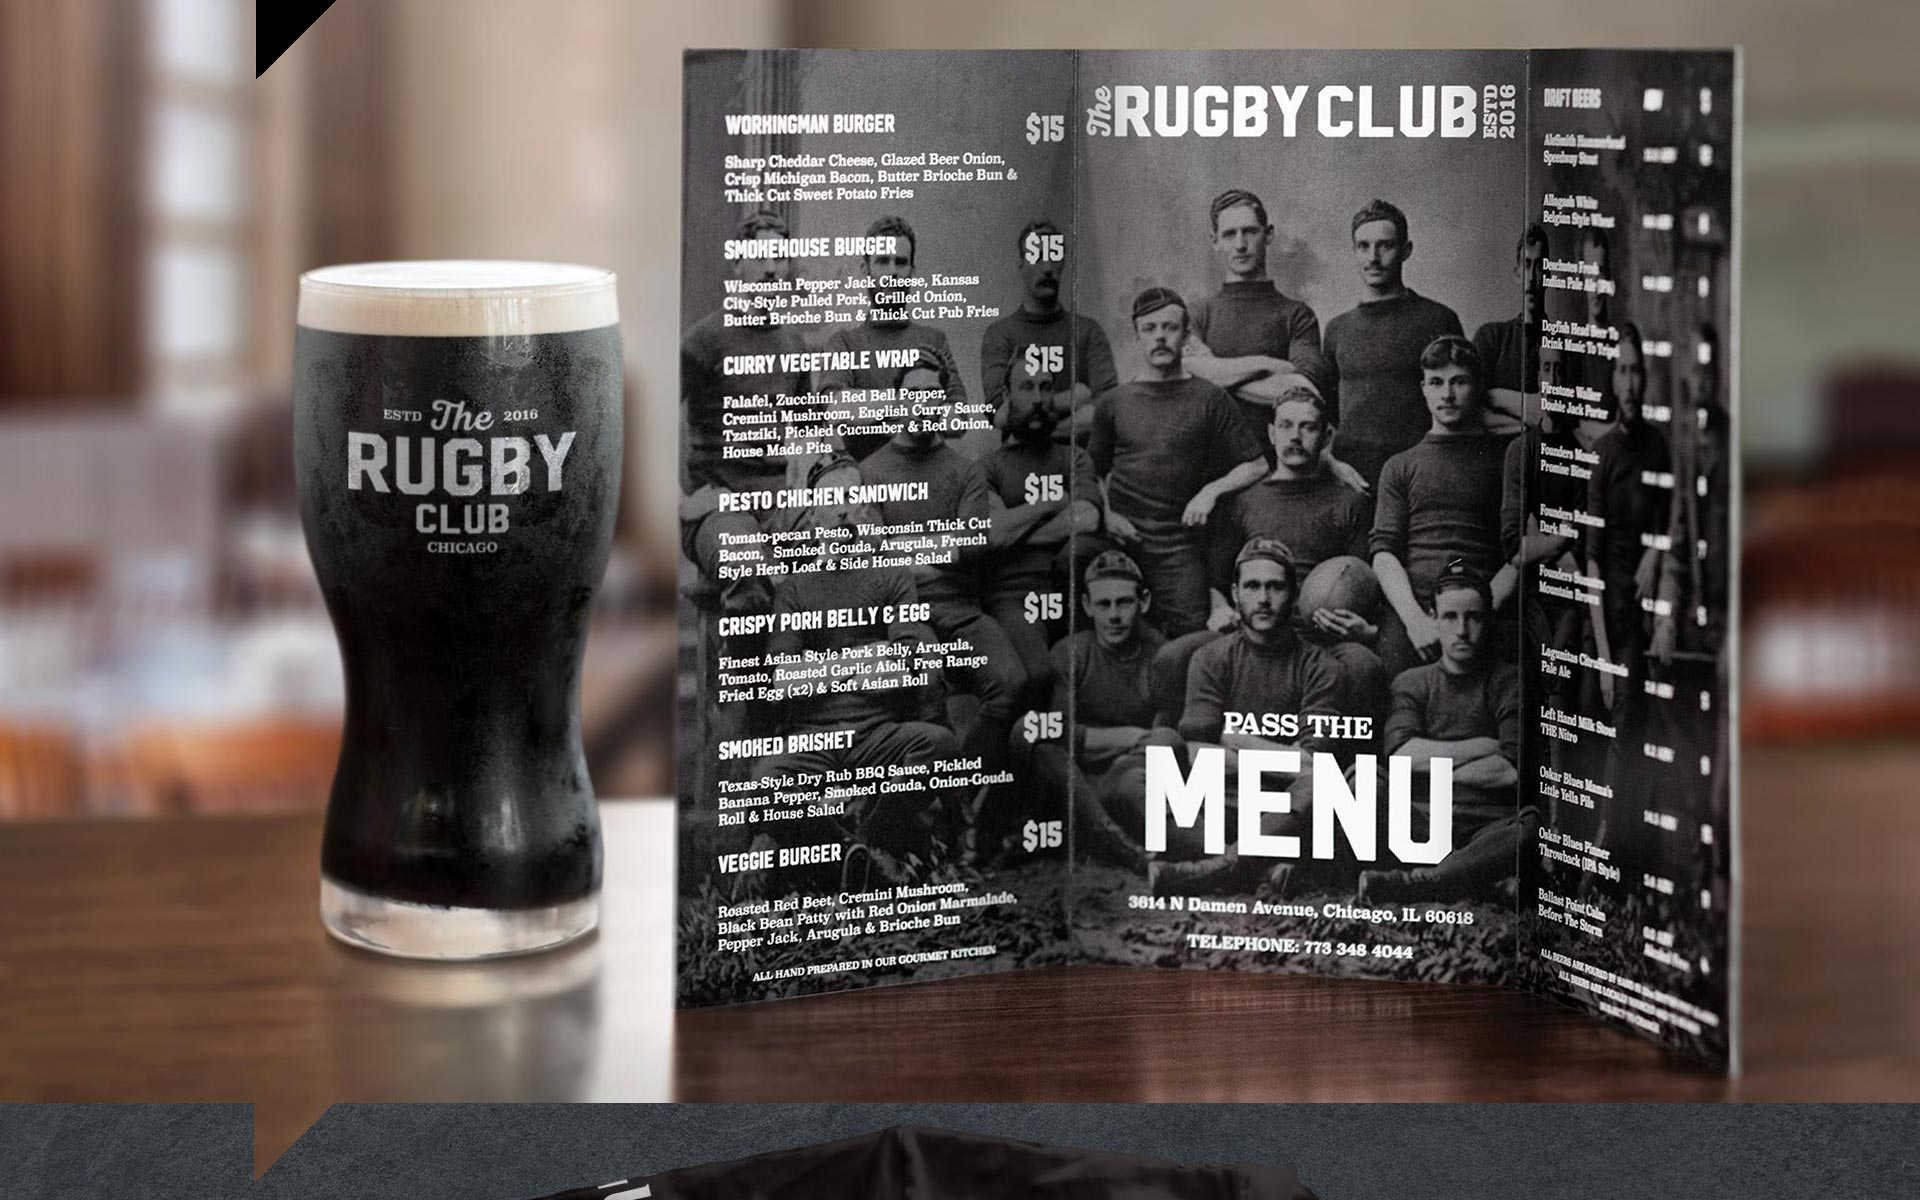 Rugby Club - Glass and Menu